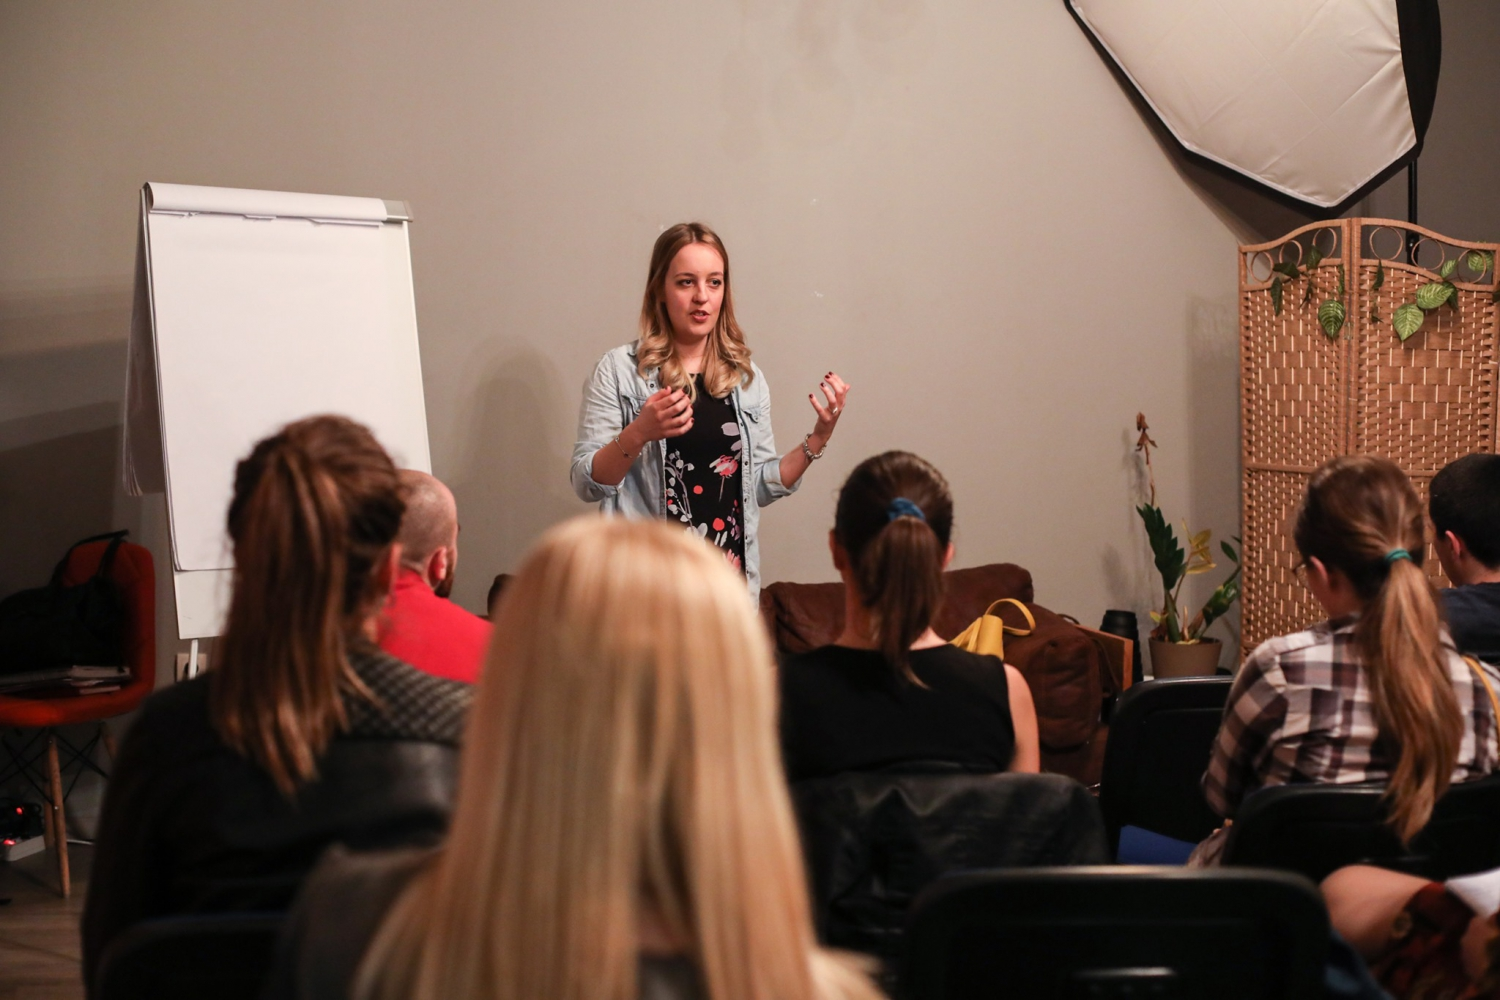 Workshop at Zahara - How To Overcome Self-Sabotage